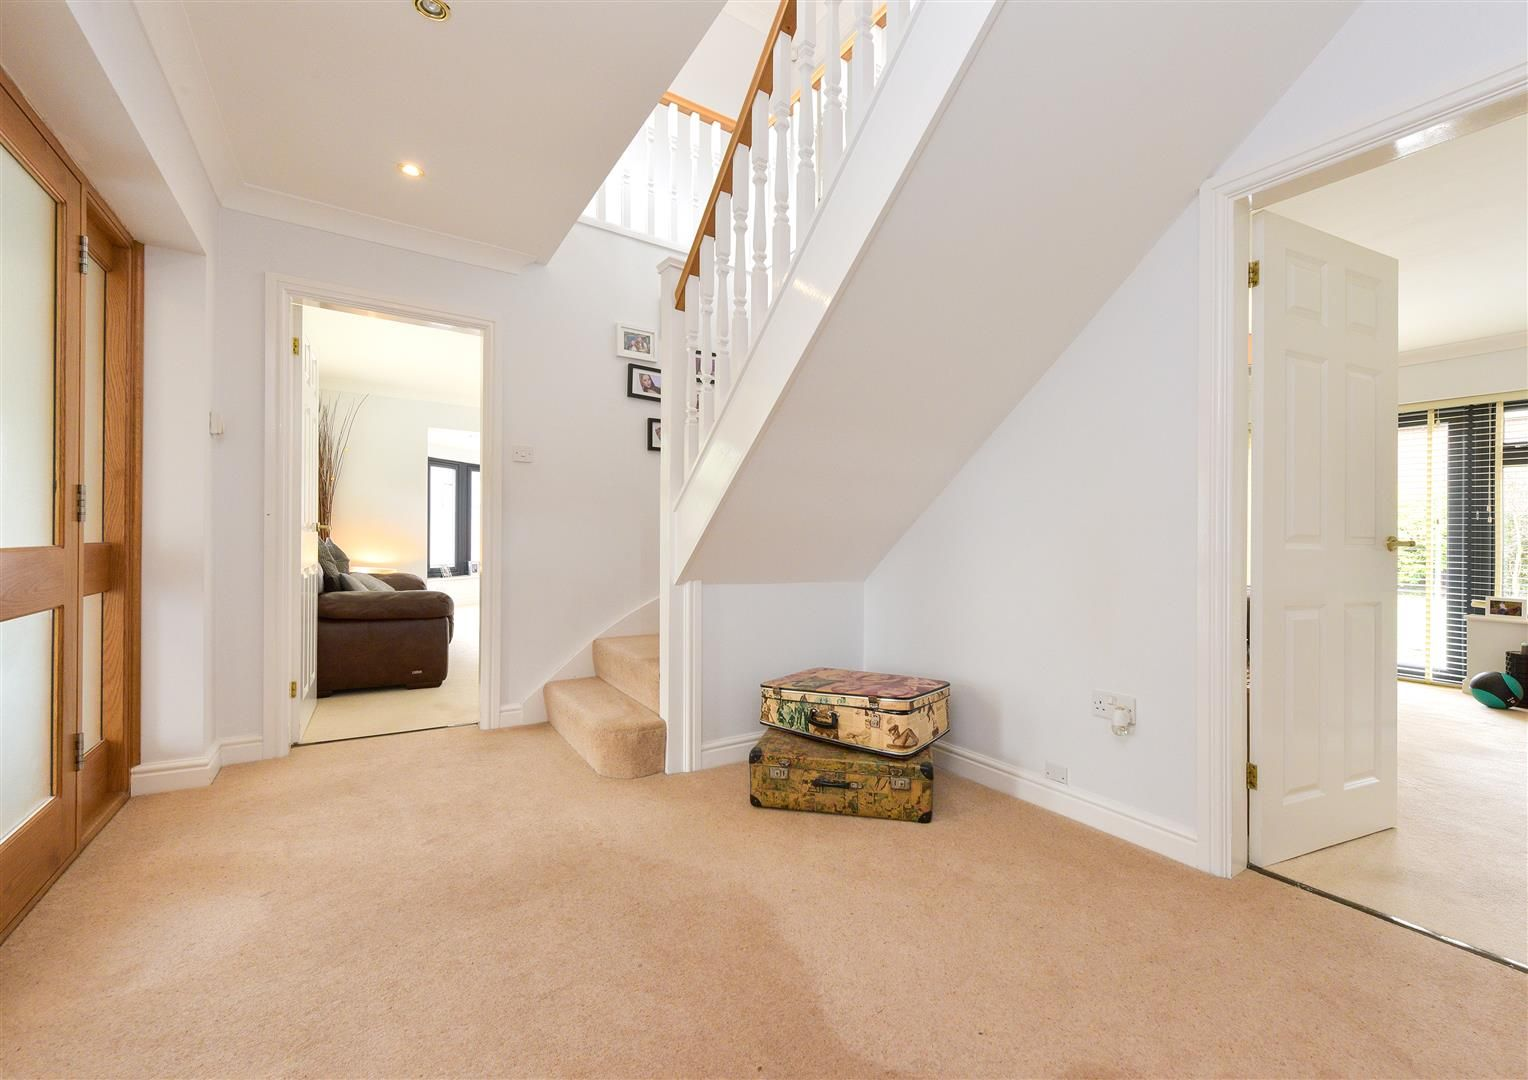 5 bed house for sale in Hagley 13